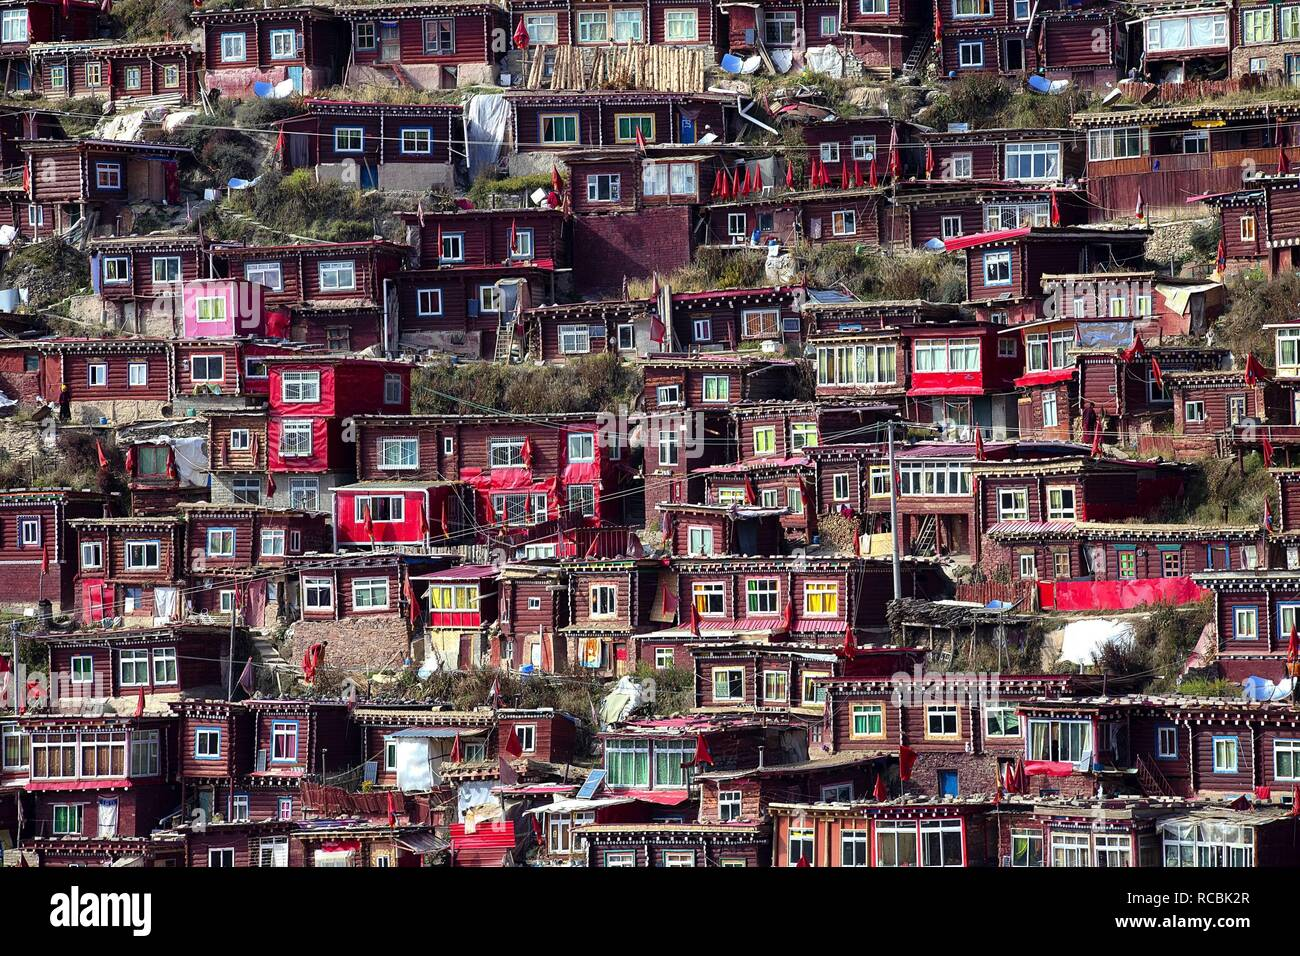 Sichuan, Sichuan, China. 15th Jan, 2019. Sichuan, CHINA-The Larung Gar Buddhist Academy is the worlds largest Tibetan Buddhist academy located in Seda County, southwest Chinas Sichuan Province. Credit: SIPA Asia/ZUMA Wire/Alamy Live News - Stock Image